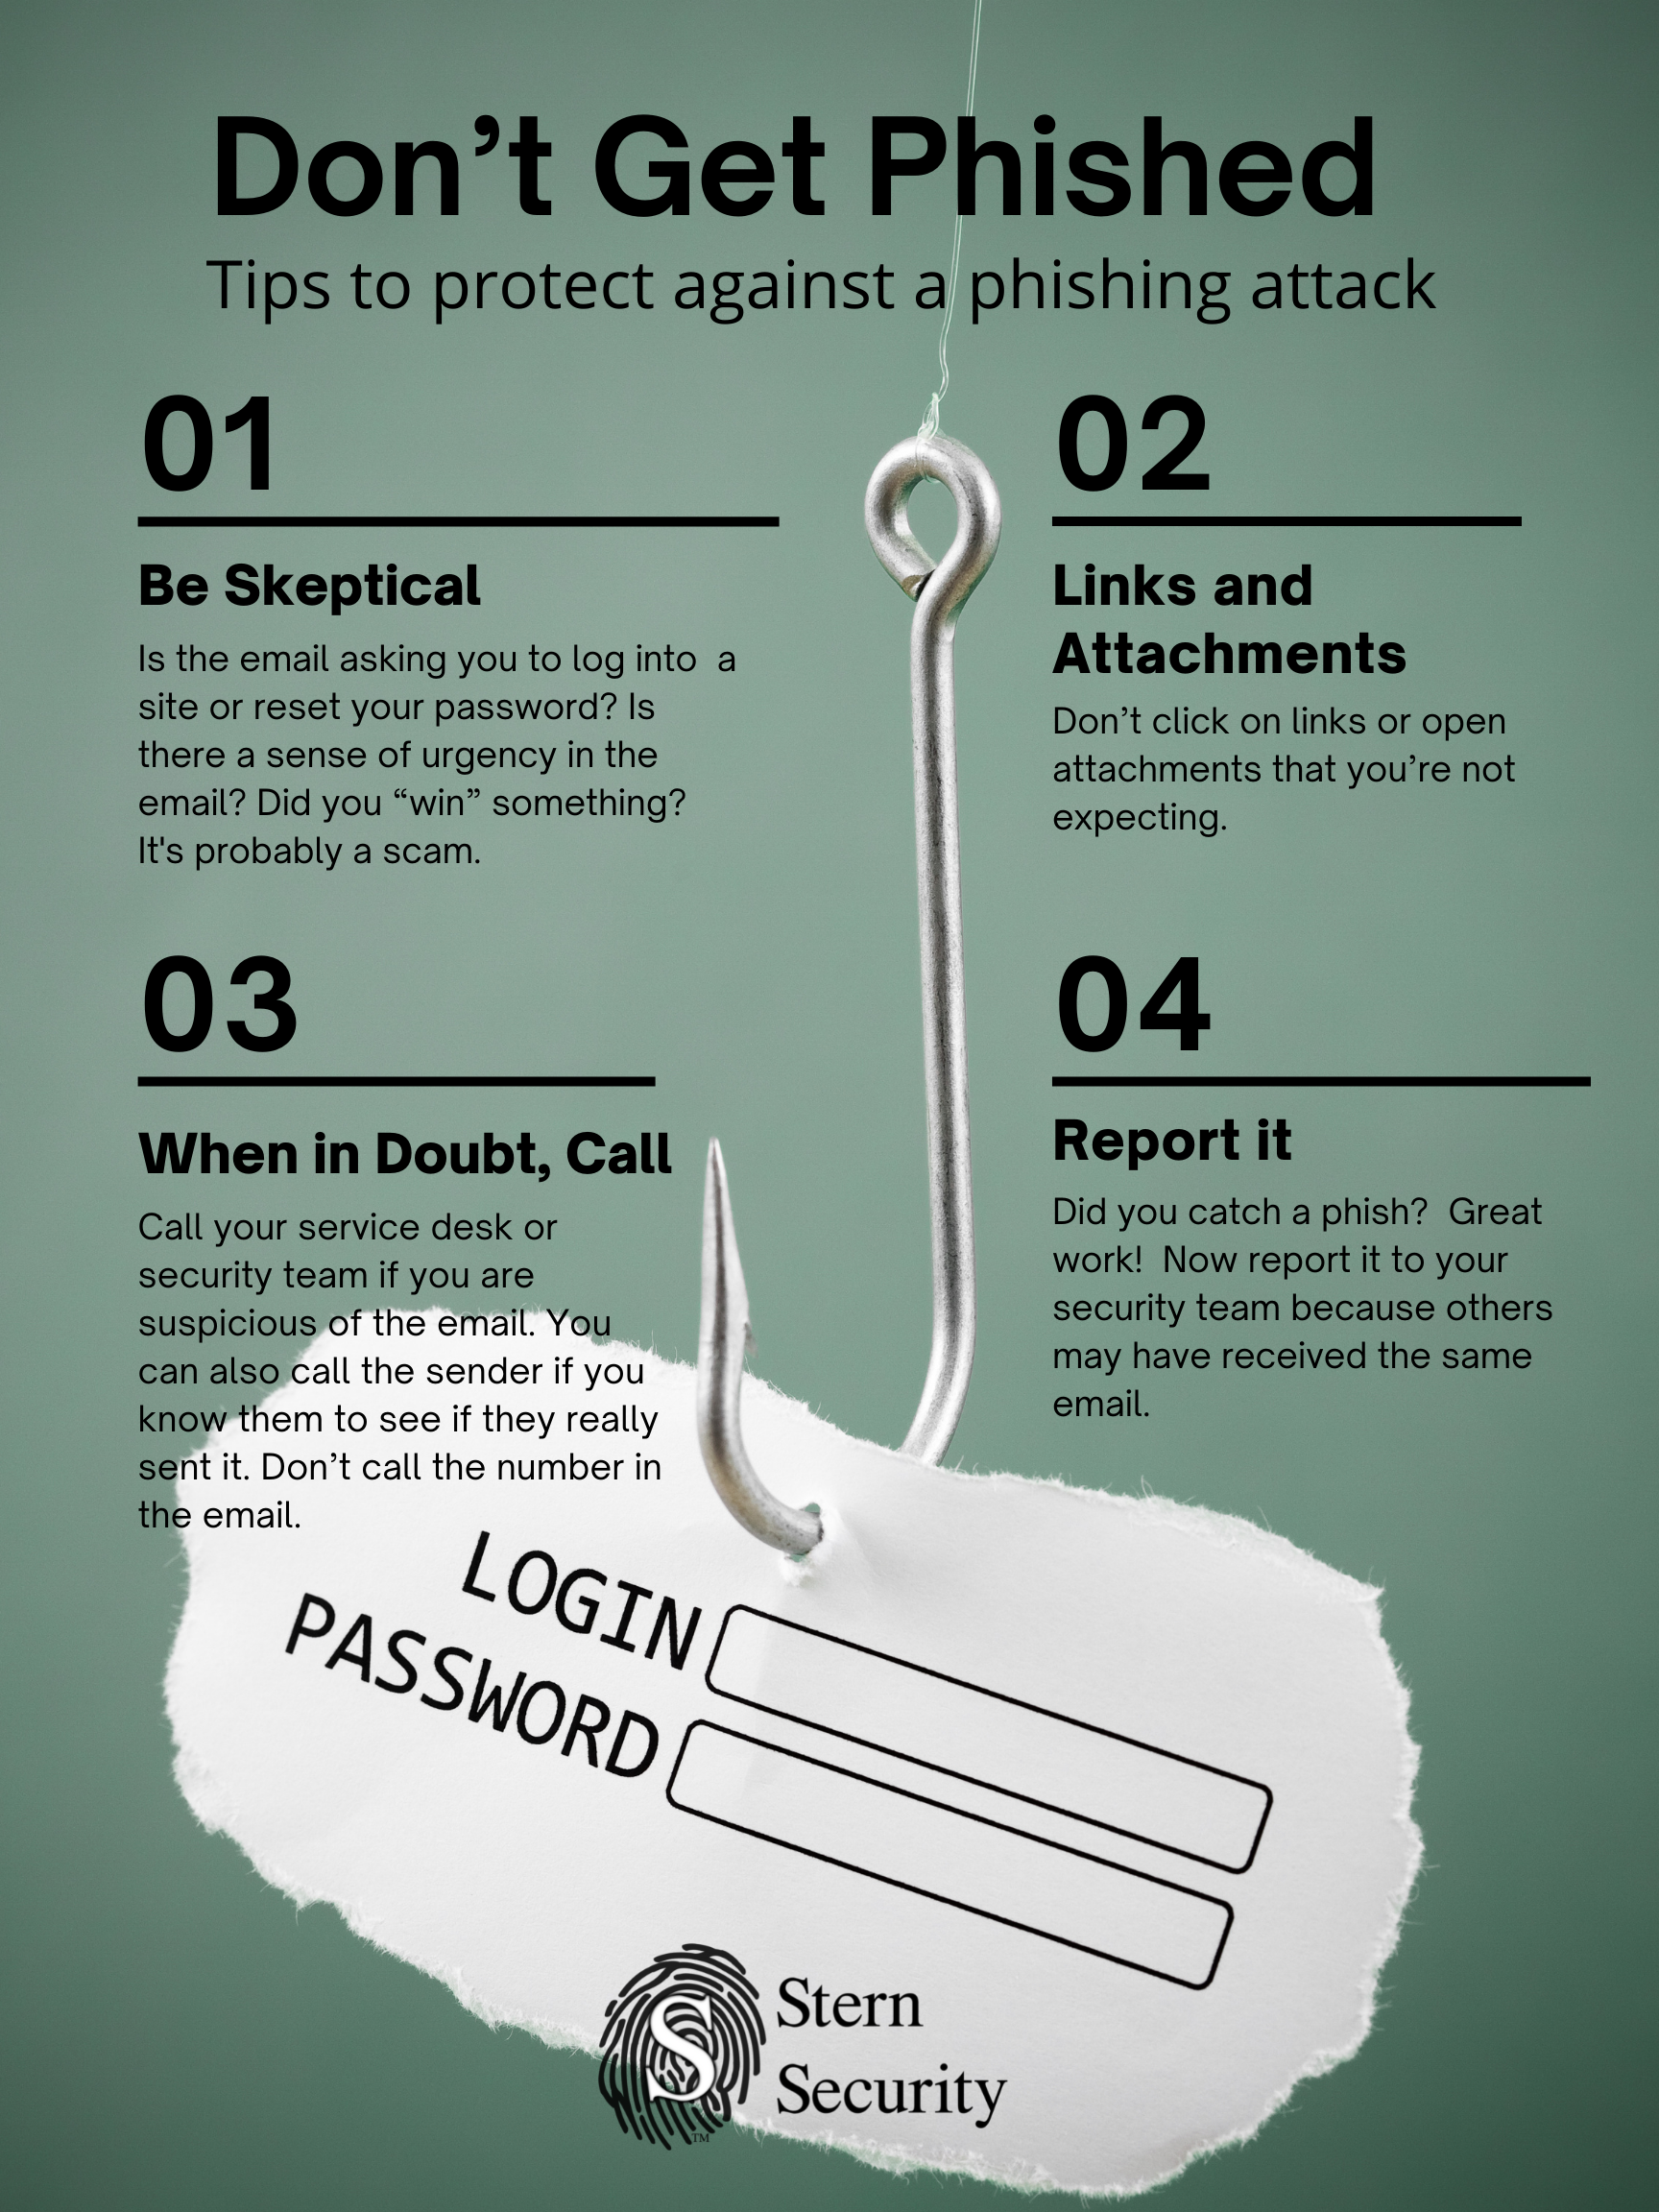 Four Phishing Protection Tips from SternSec